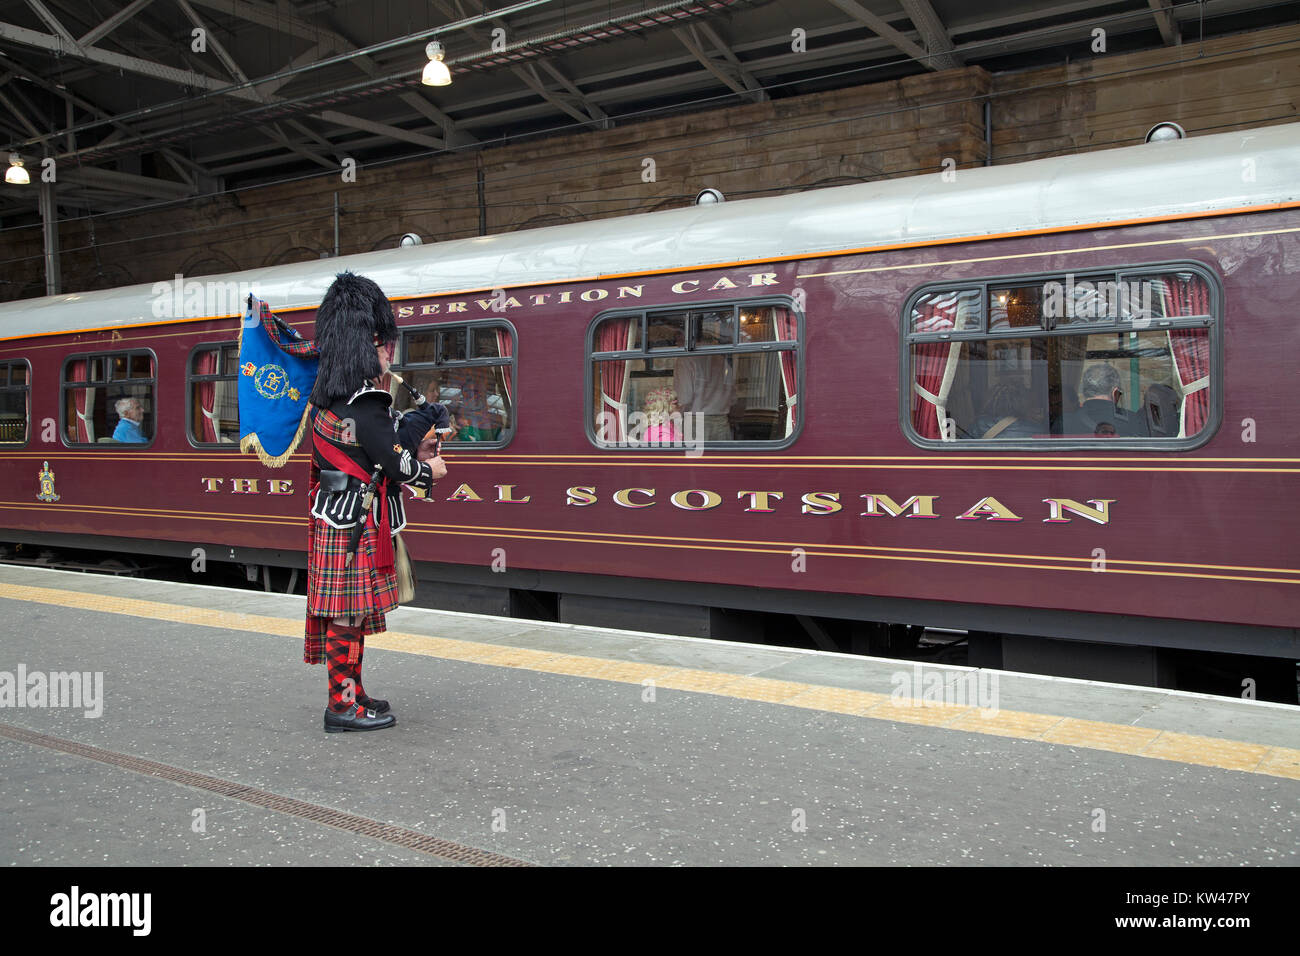 A piper greeting The Royal Scotsman train in Edinburgh Waverley train station, Scotland. - Stock Image